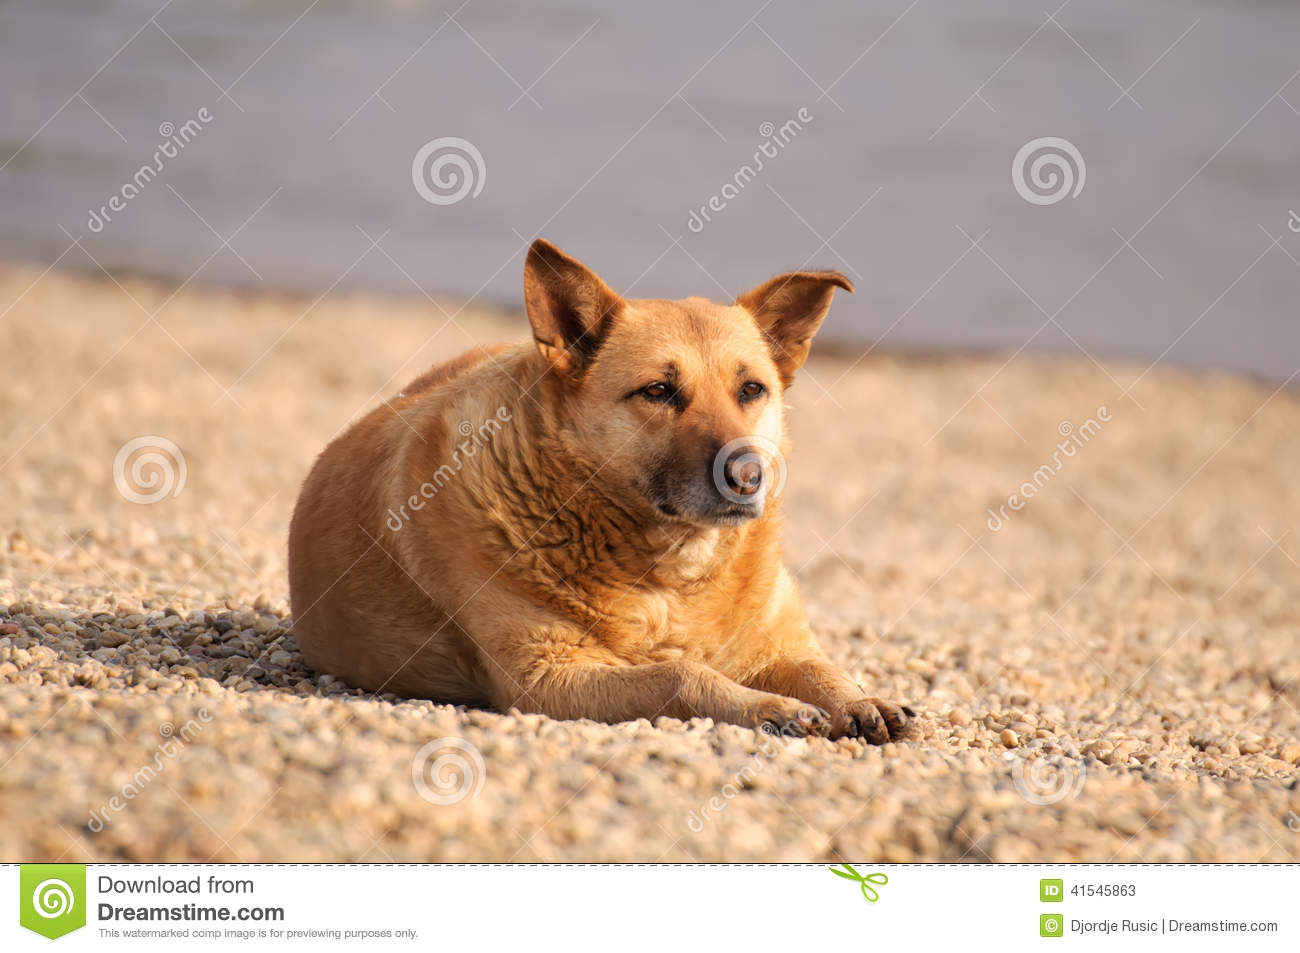 Dog Relaxing Stock Photo - Image: 41545863 Relaxing Dogs